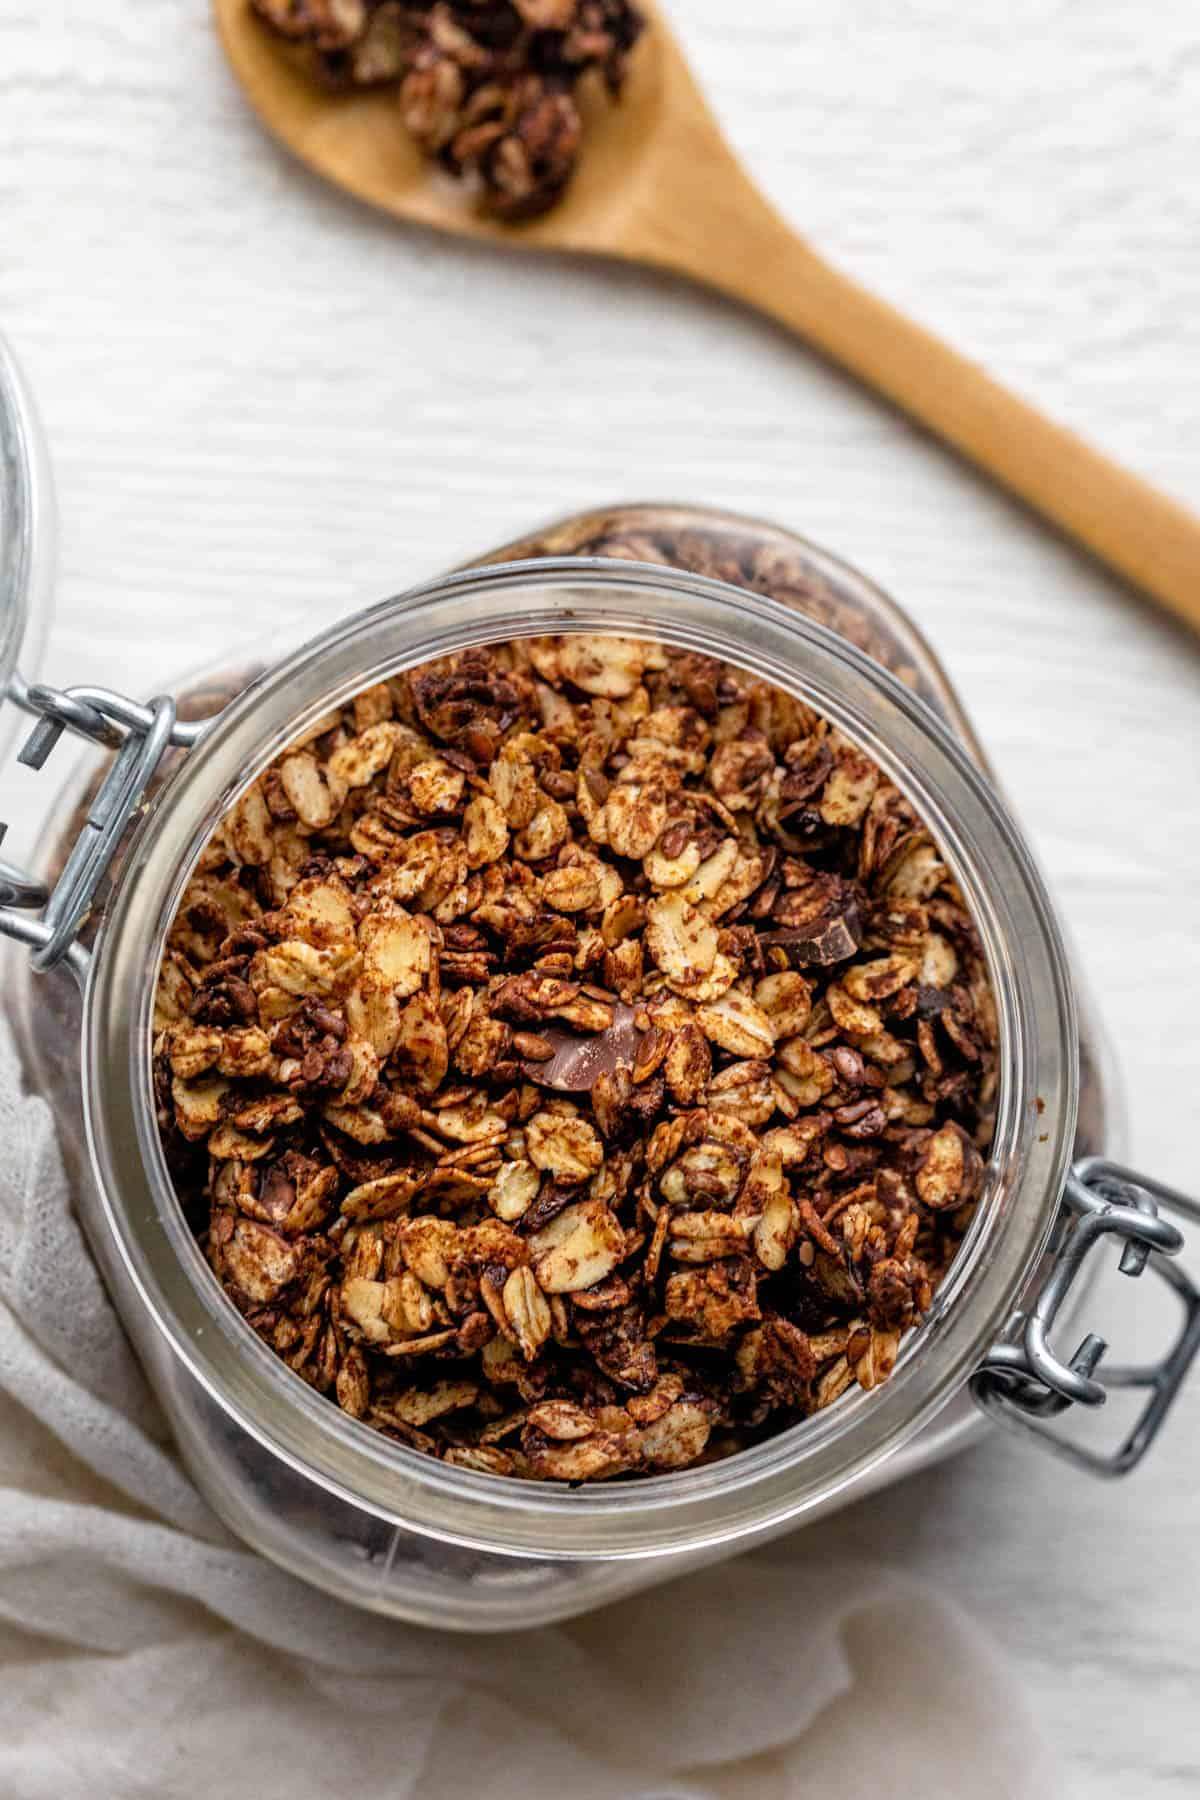 Jar canister of chocolate granola with wooden spoon on side with granola on it